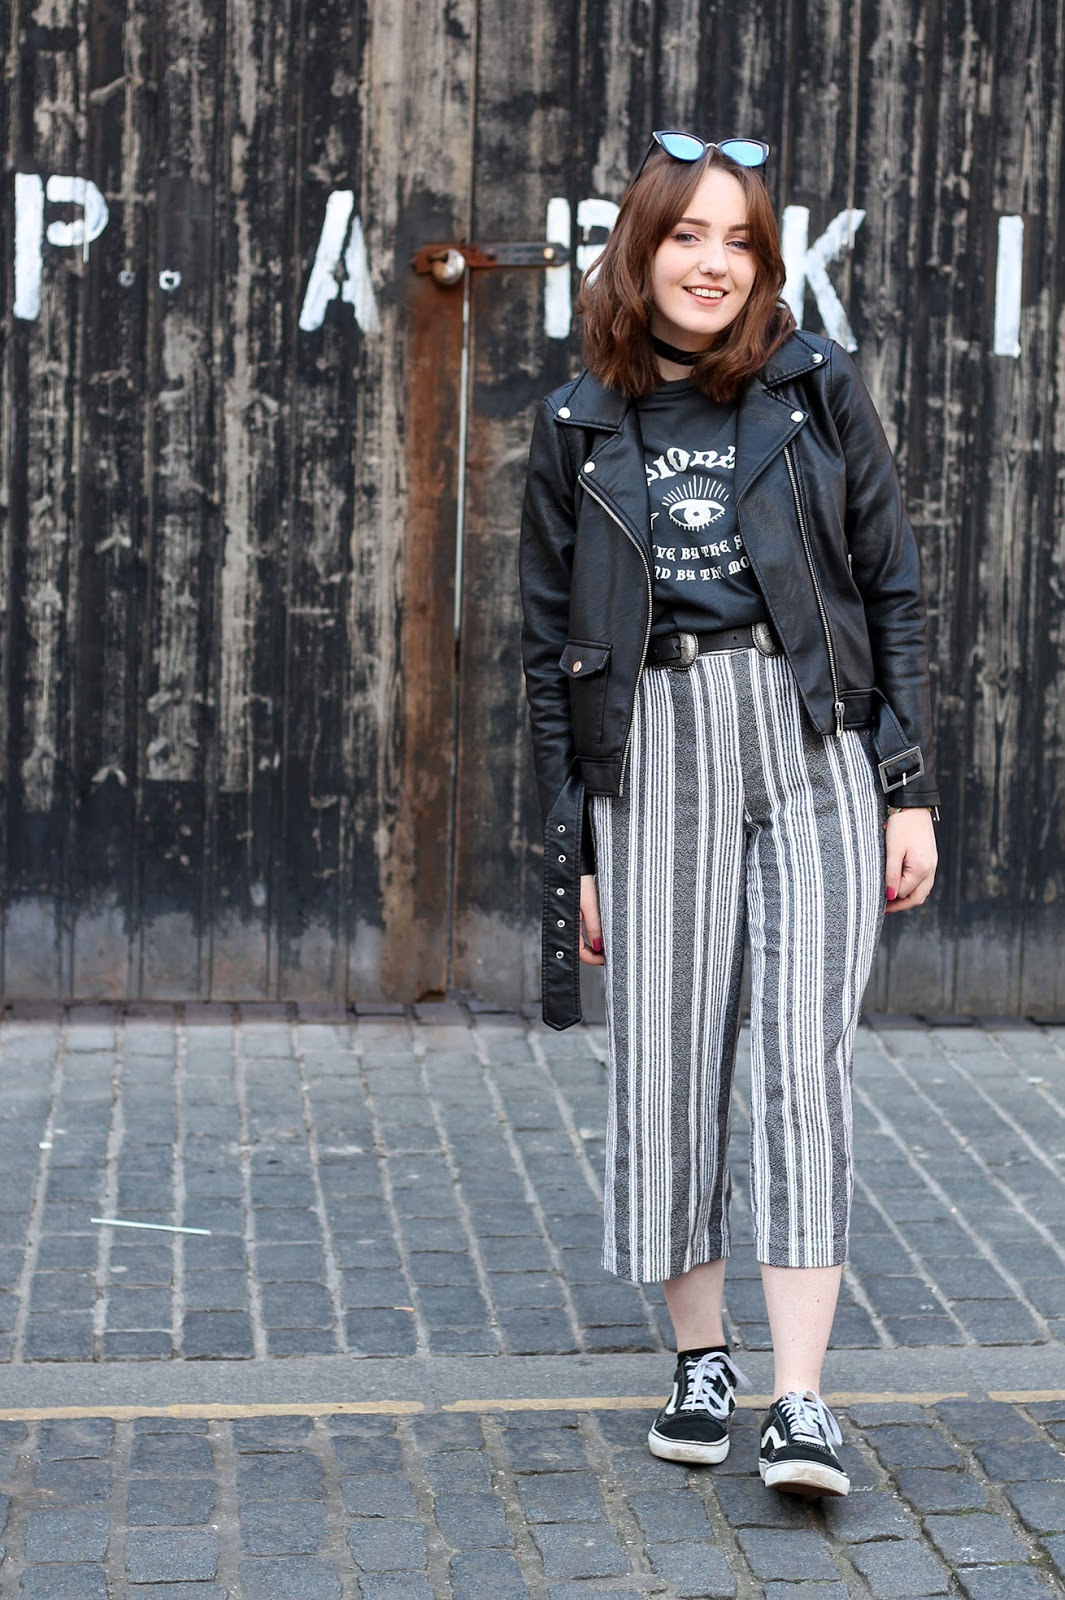 gig outfit ideas: Liverpool fashion blog outfit